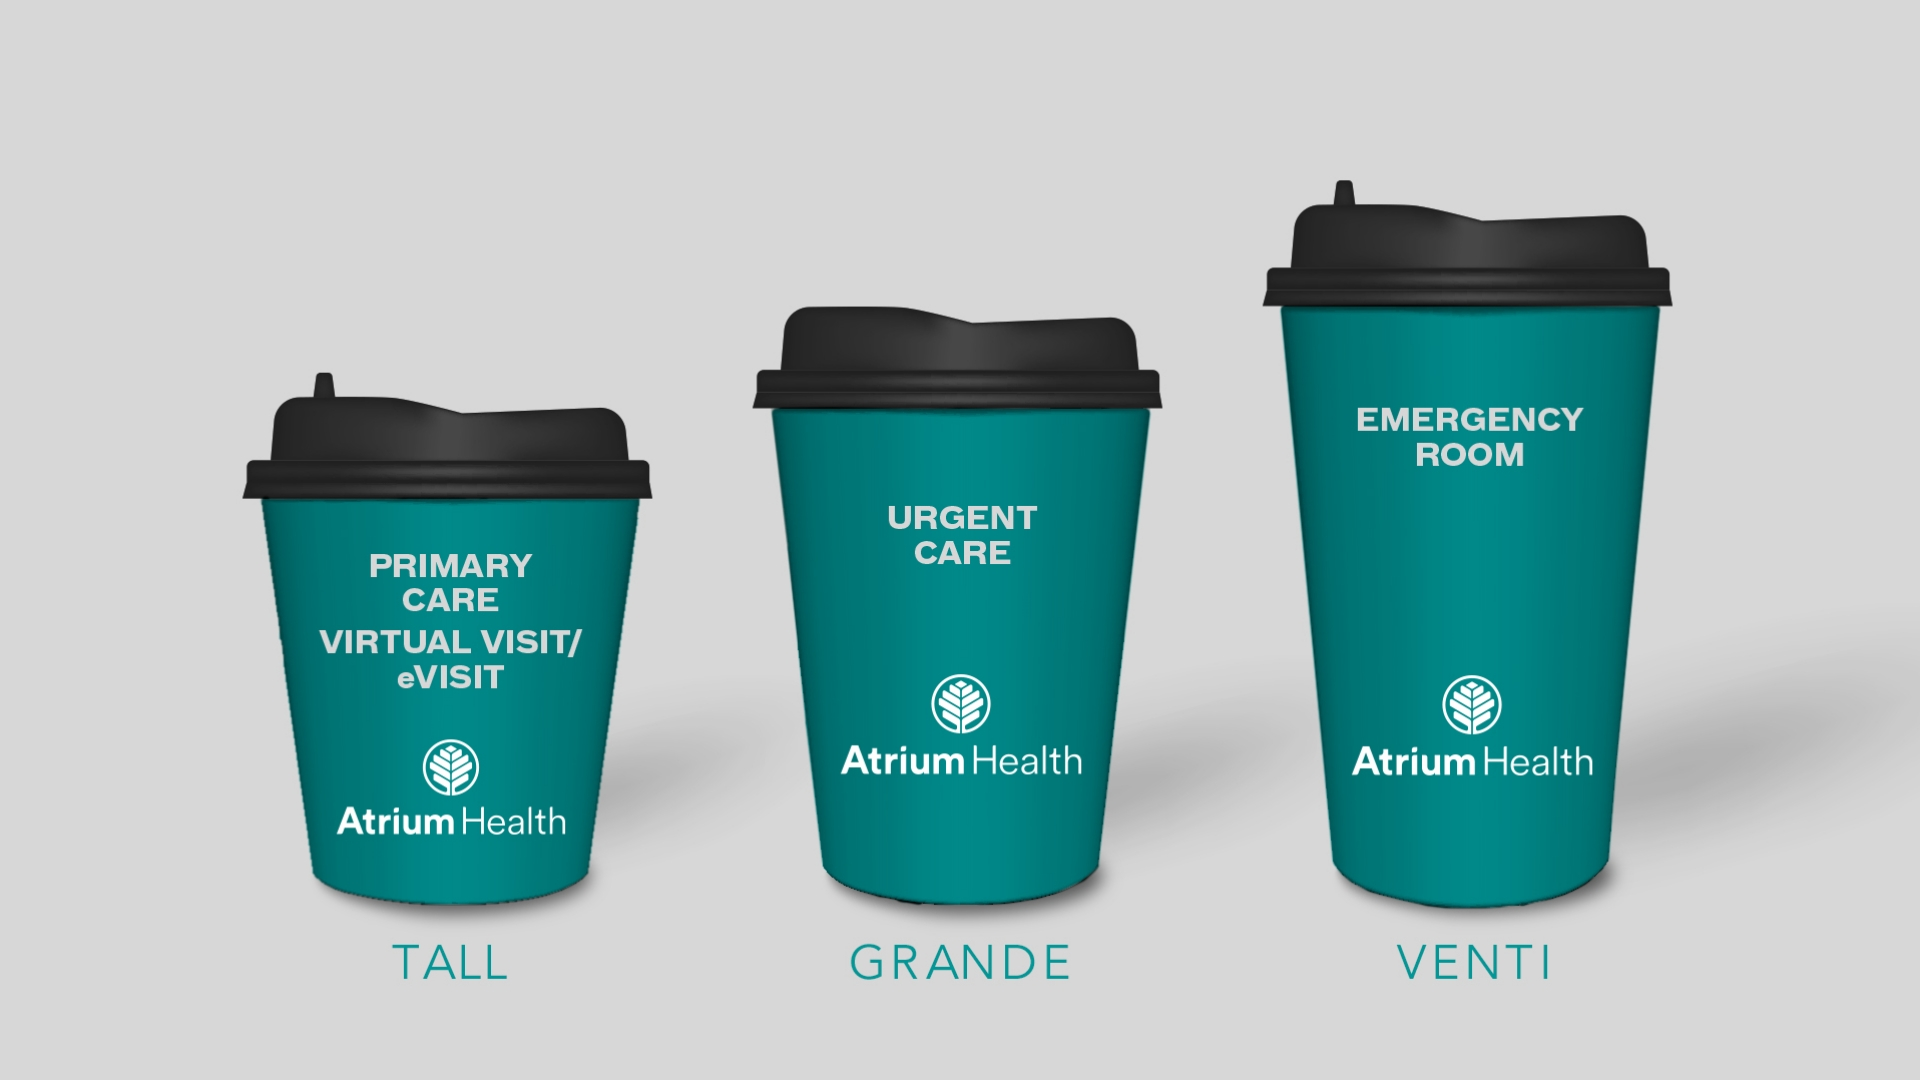 When seeking care, it's important to know where and when to see a doctor. But how do you know where to go when you need care? Luckily, knowing where to go is as easy as ordering your favorite cup of coffee.